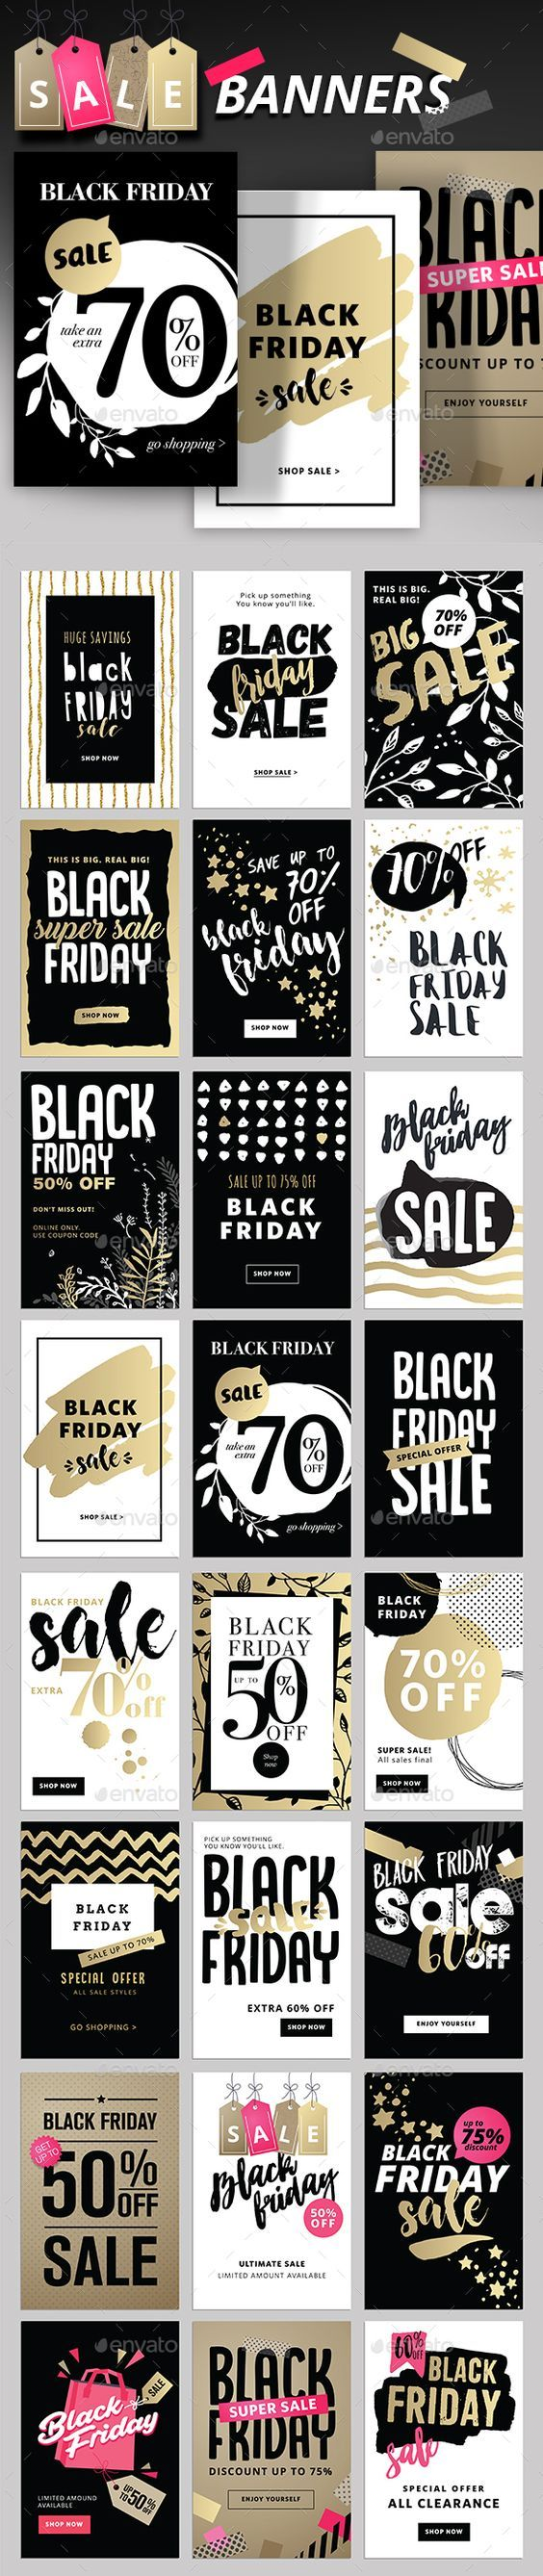 Black Friday Social Media Banners Template PSD, Transparent PNG, Vector EPS, AI Illustrator: